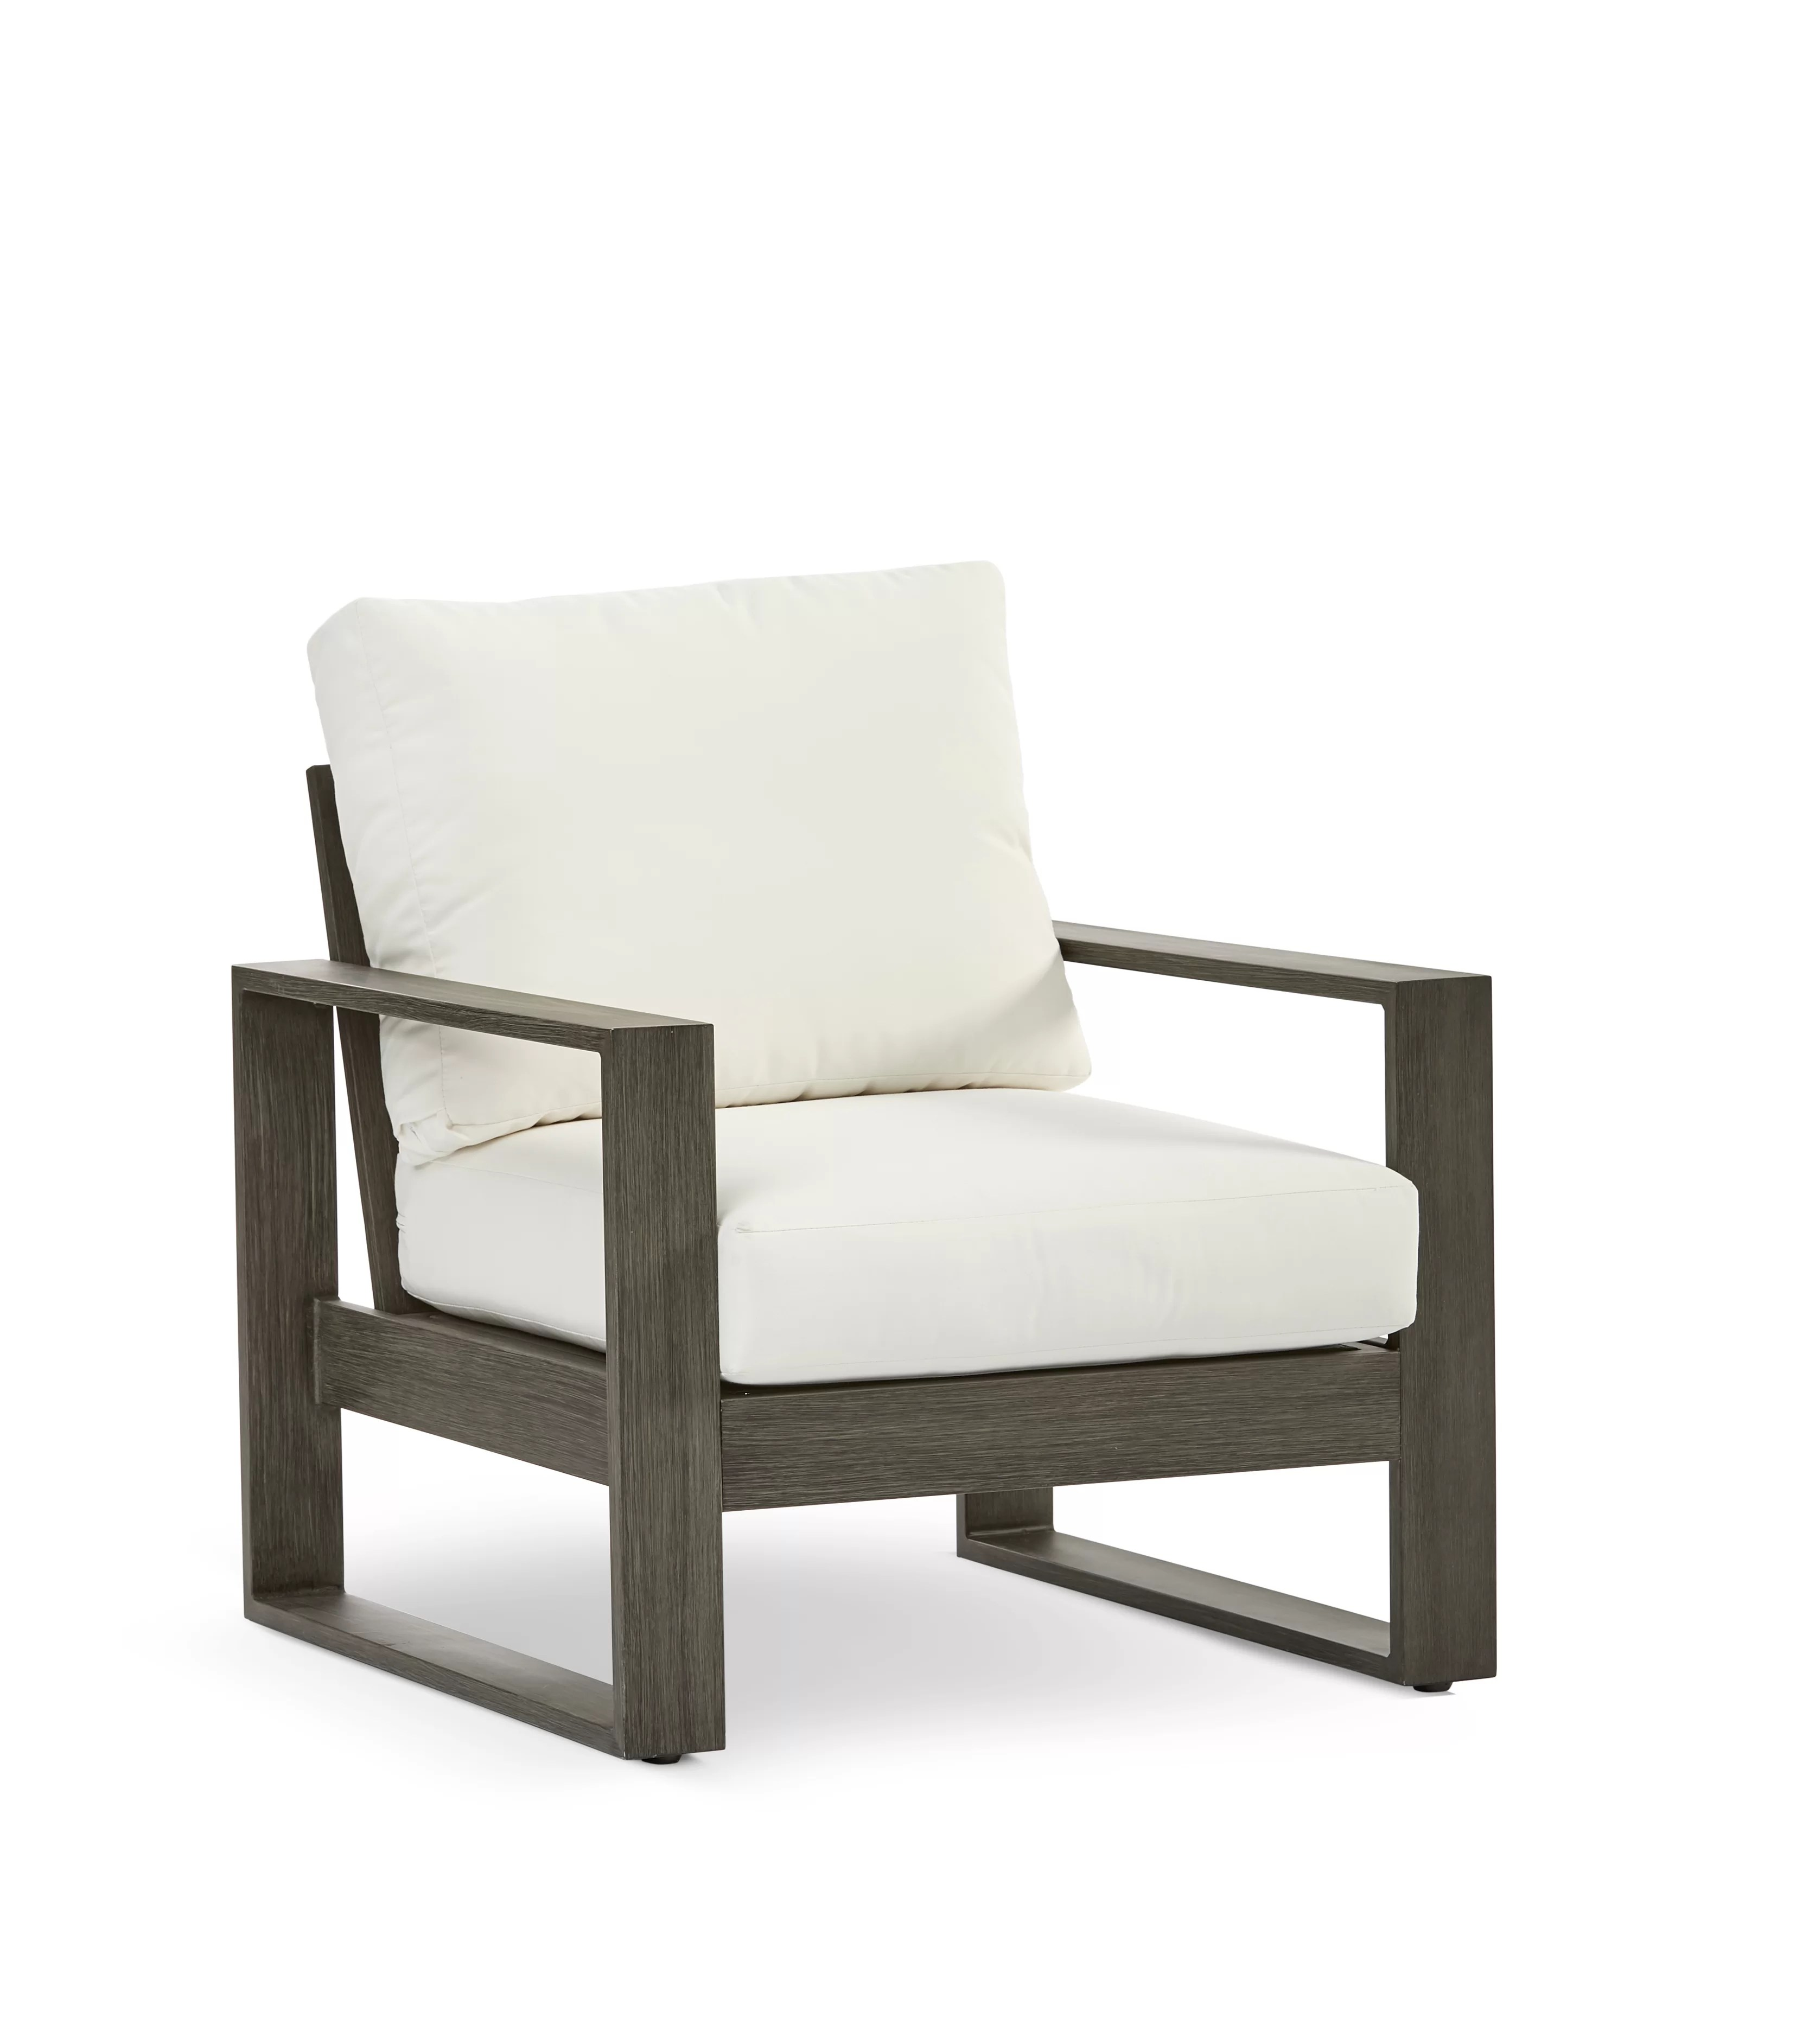 Parks Patio Chair With Cushions Reviews Joss Main